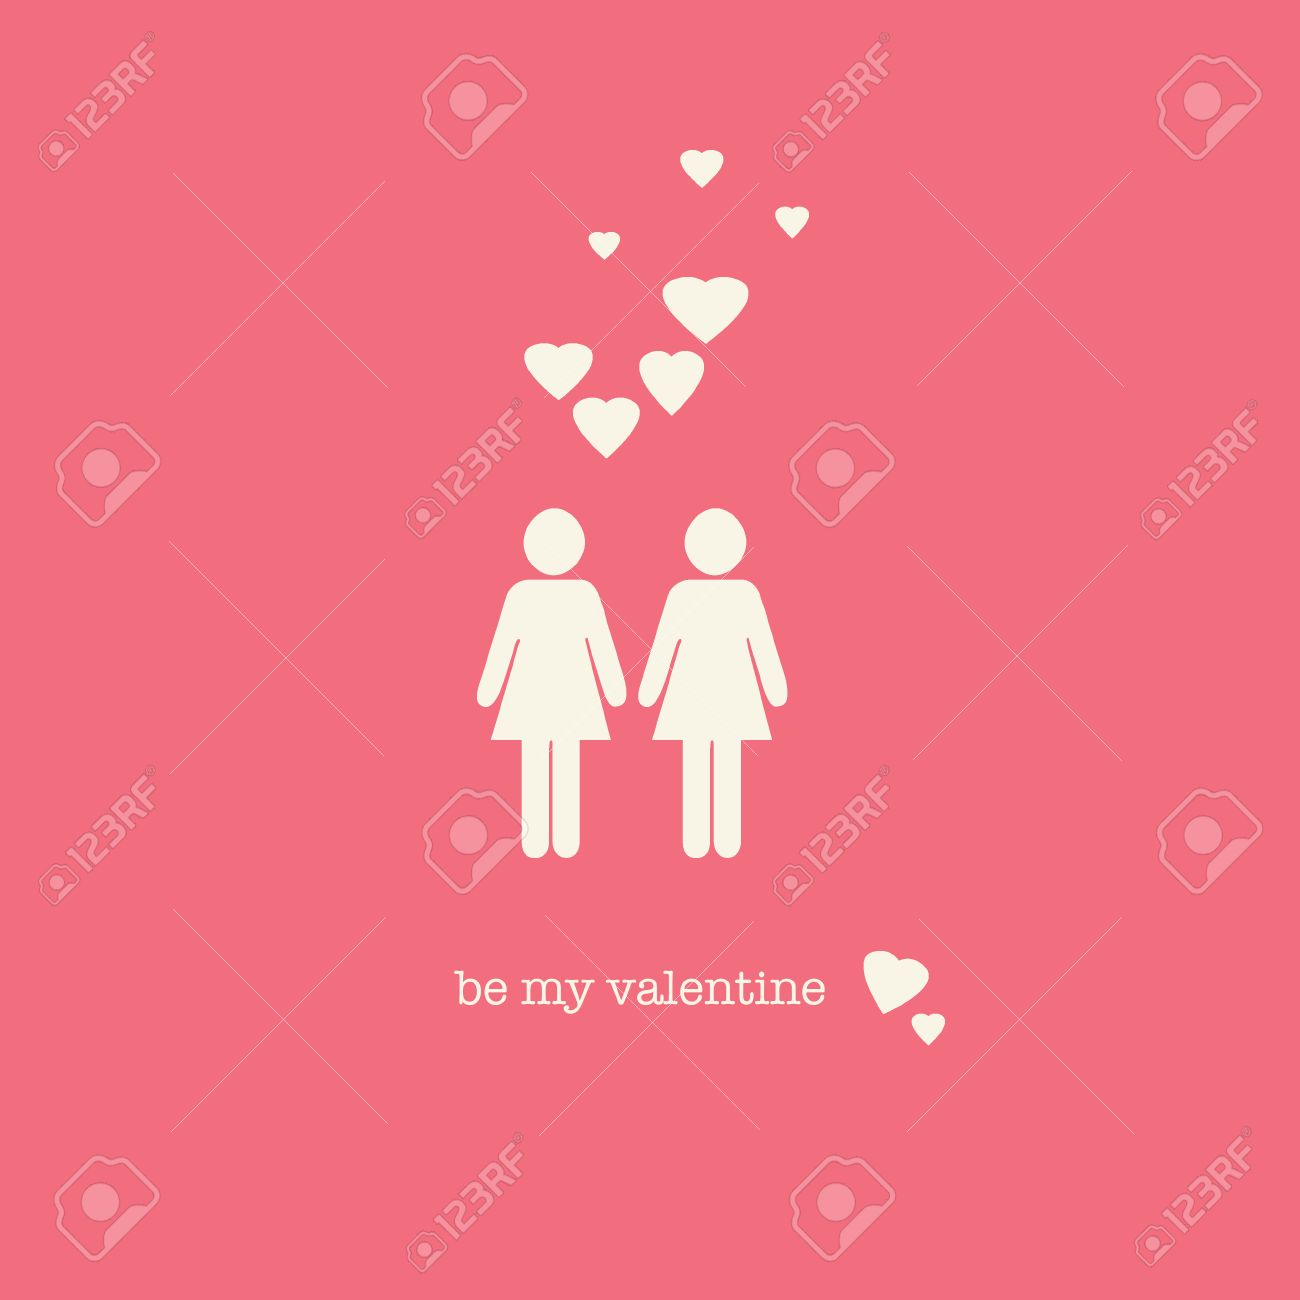 Collection Sweet Valentines Day Pictures Mothers day card – Sweet Valentine Card